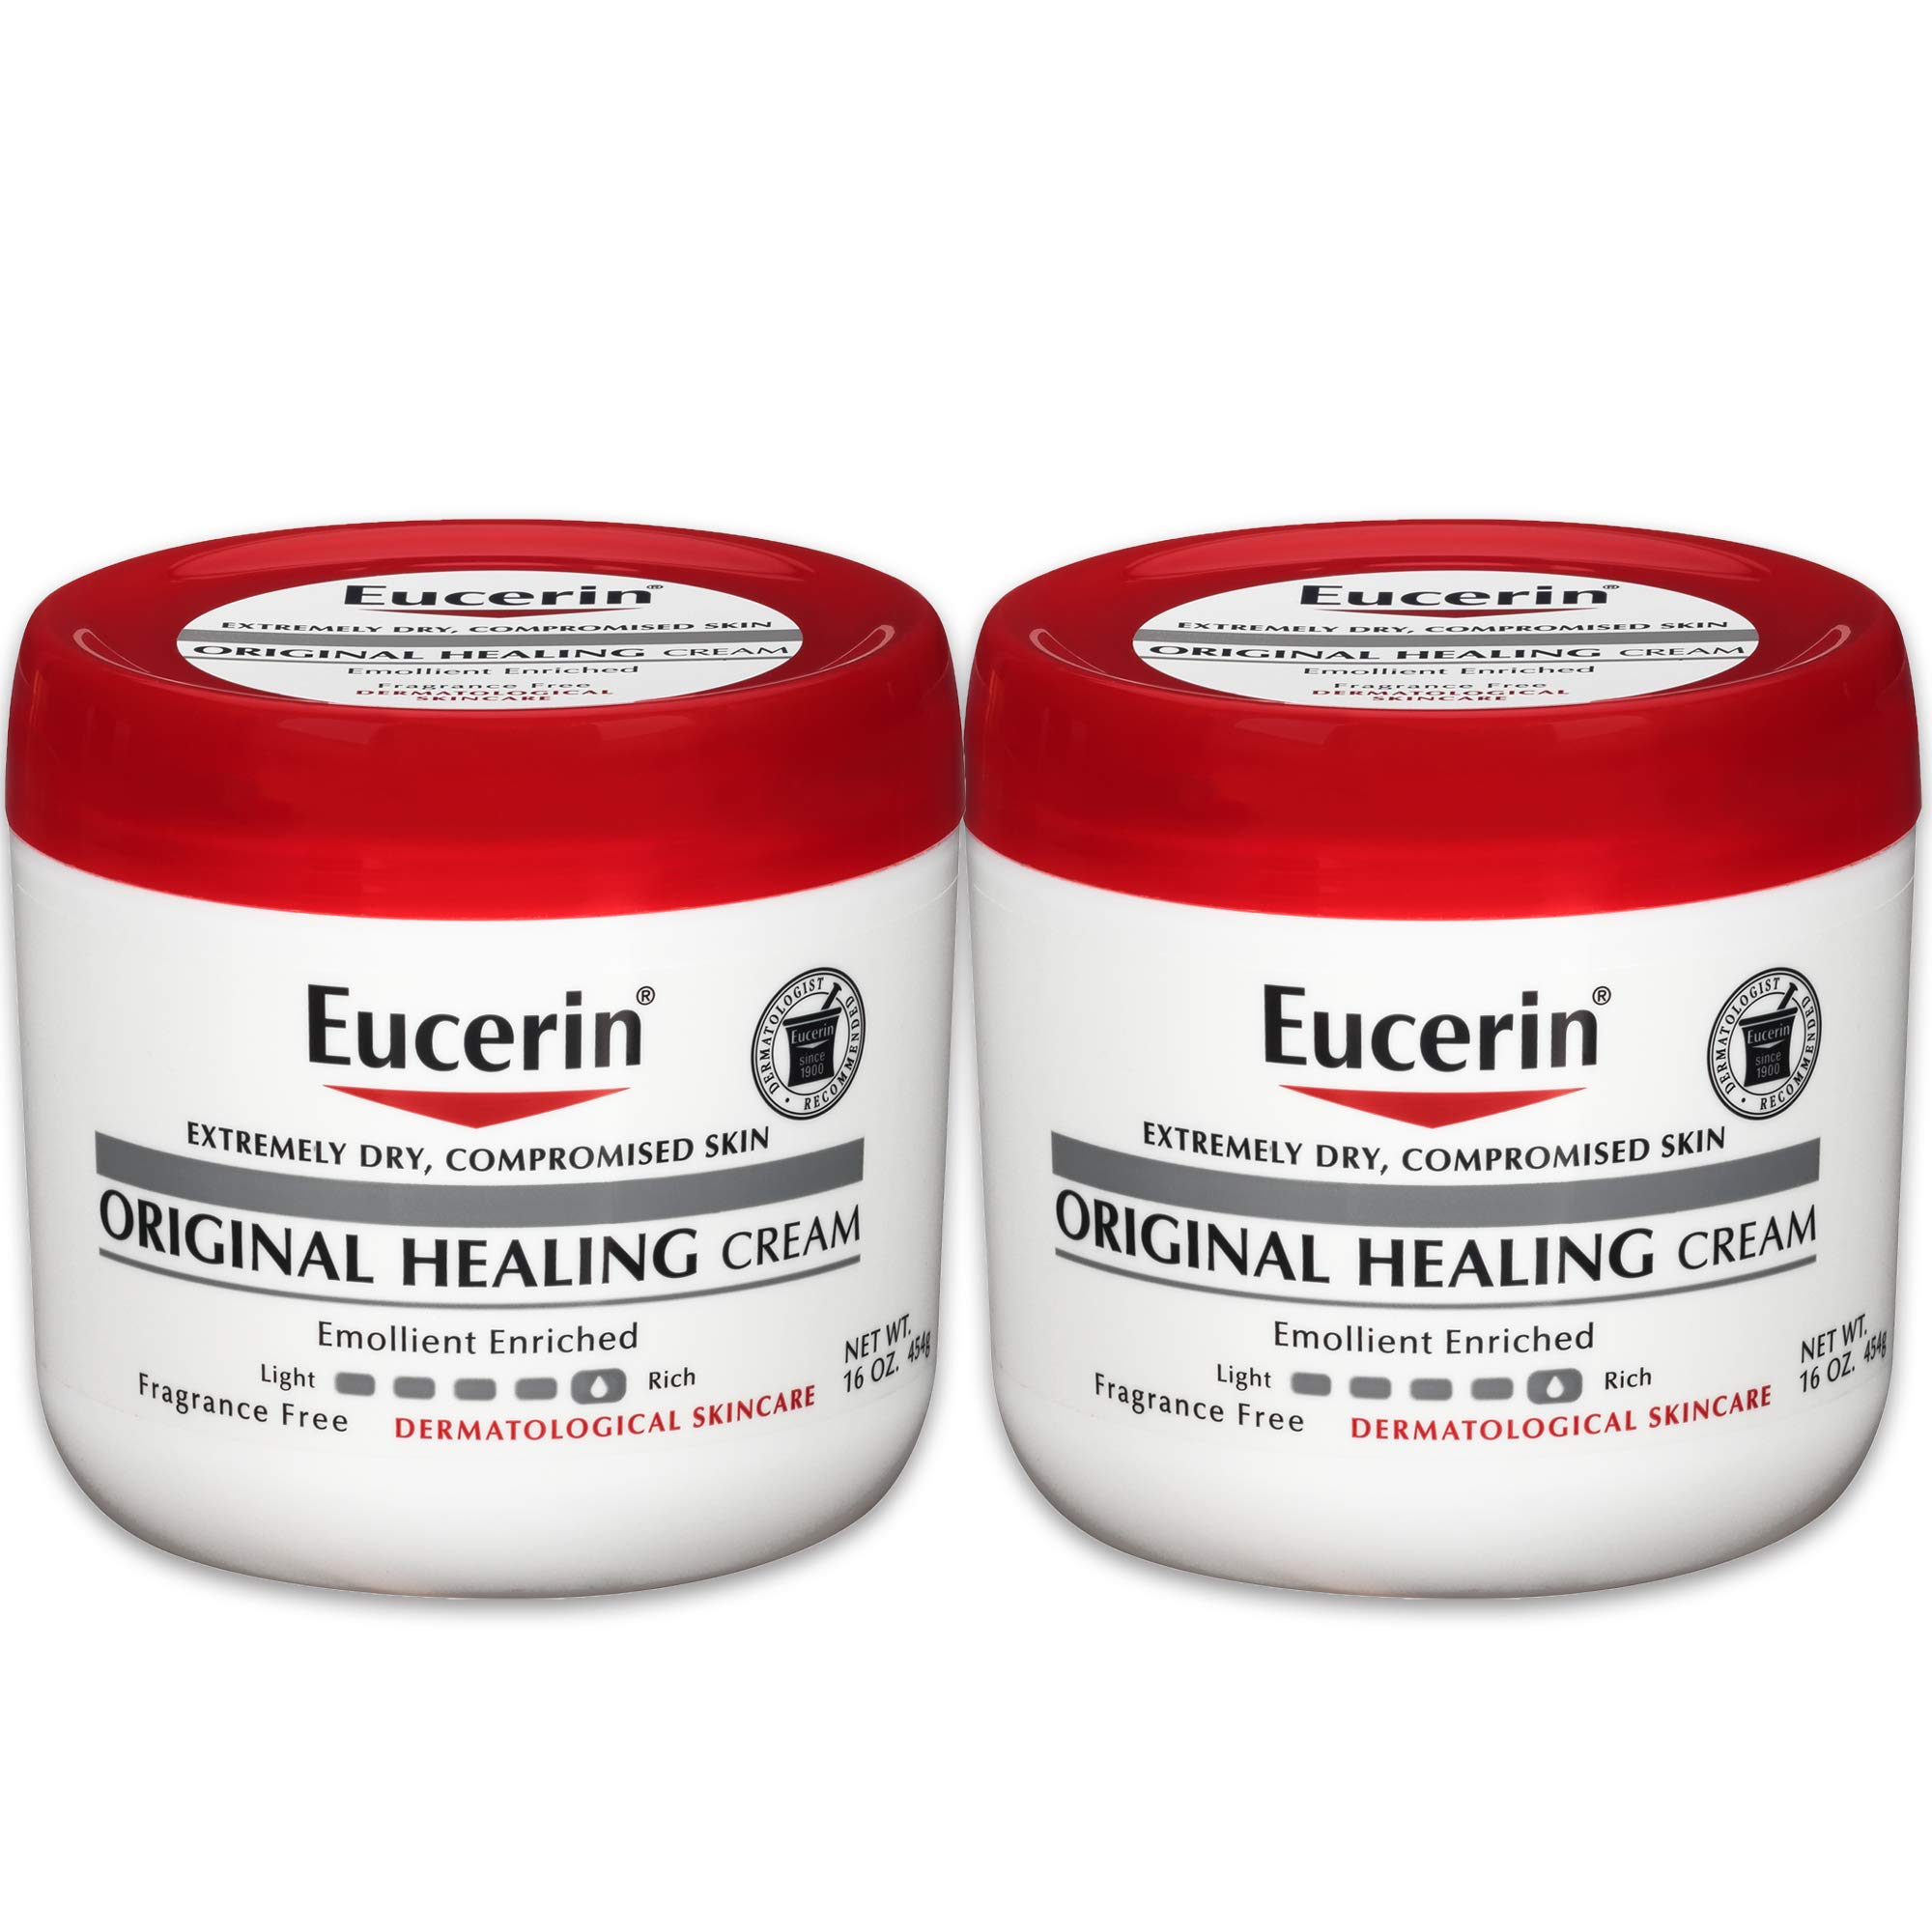 Eucerin Original Healing Cream - Fragrance Free, Rich Lotion for Extremely Dry Skin - 16 oz. Jar (Pack of 2) by Eucerin